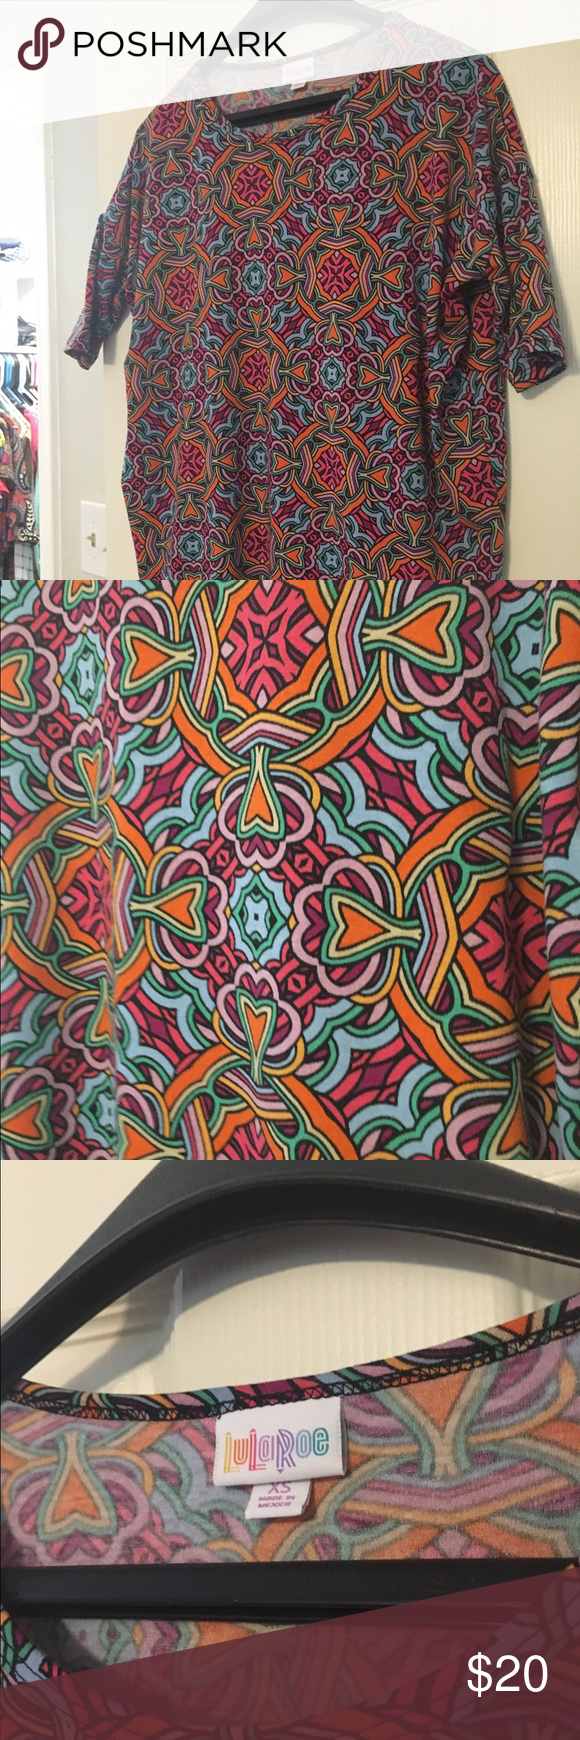 LuLaRoe XS Irma XS Irma excellent condition. Worn a few times and washed per LuLaRoe standard. Super cute! LuLaRoe Tops Tunics